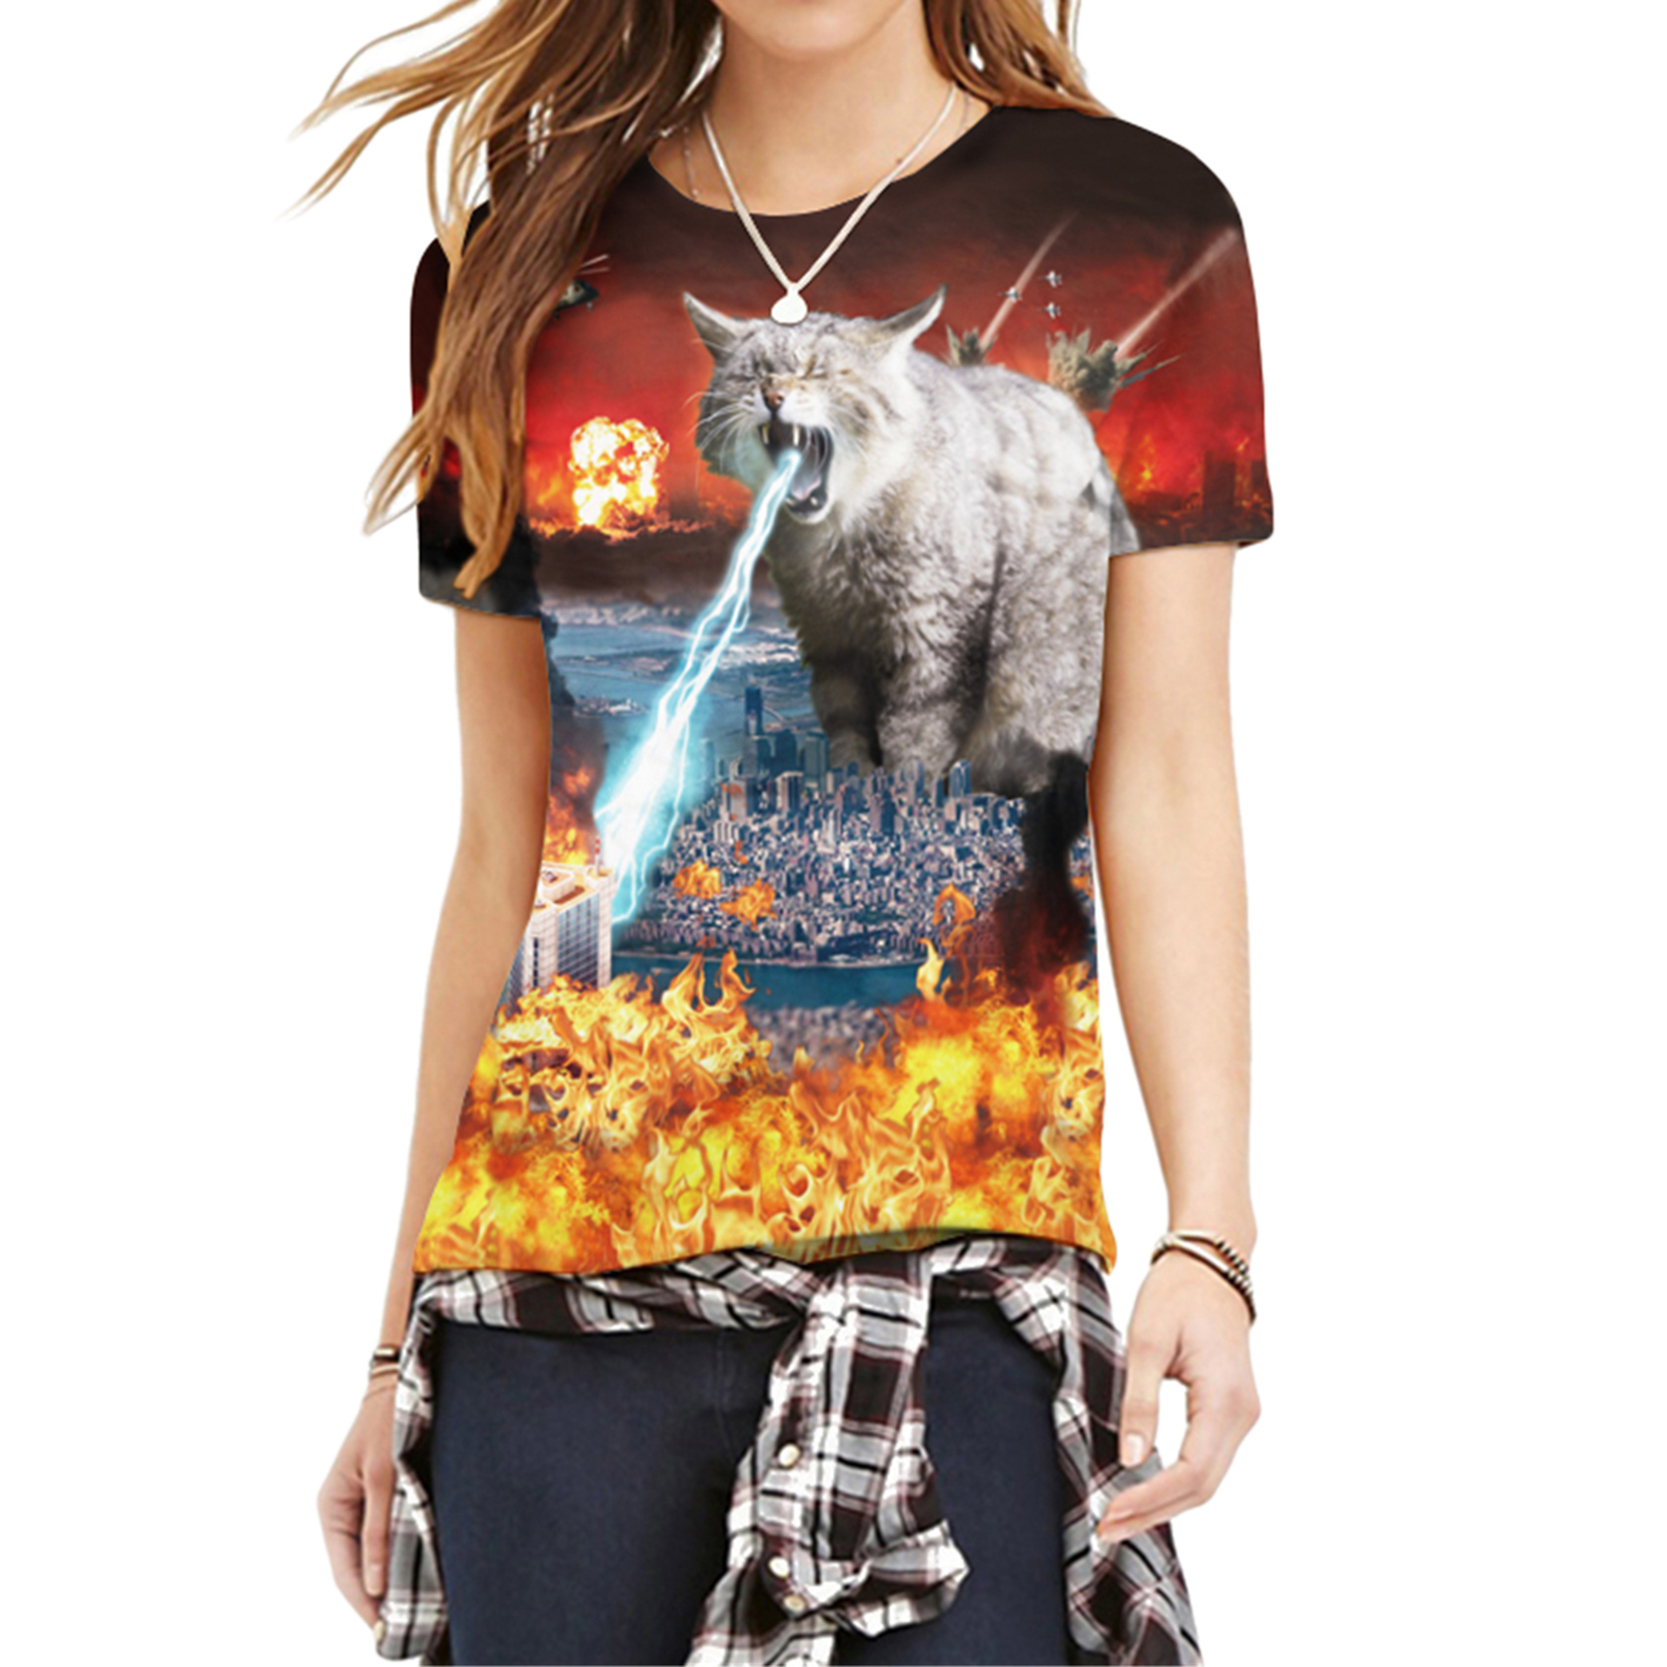 Funny Short Sleeve Attractive Design Style Wonderful Cartoon Wars 3D T-Shirts Interesting Animal Cat Printed Women T-Shirts(China (Mainland))